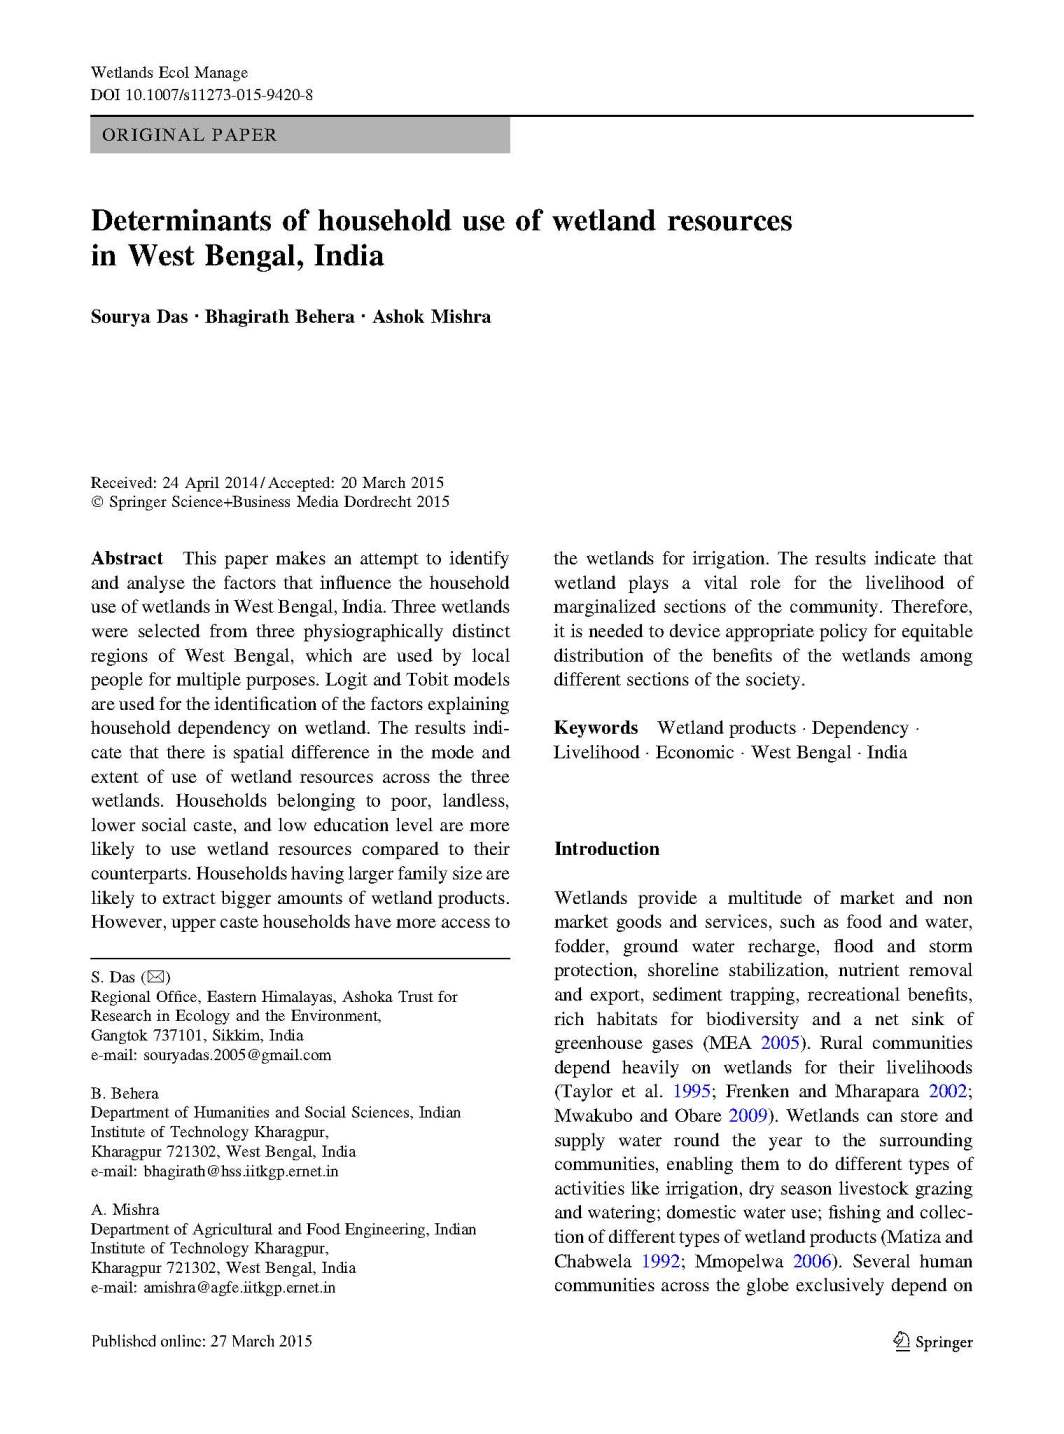 Determinants of household use of wetland resources in West Bengal, India